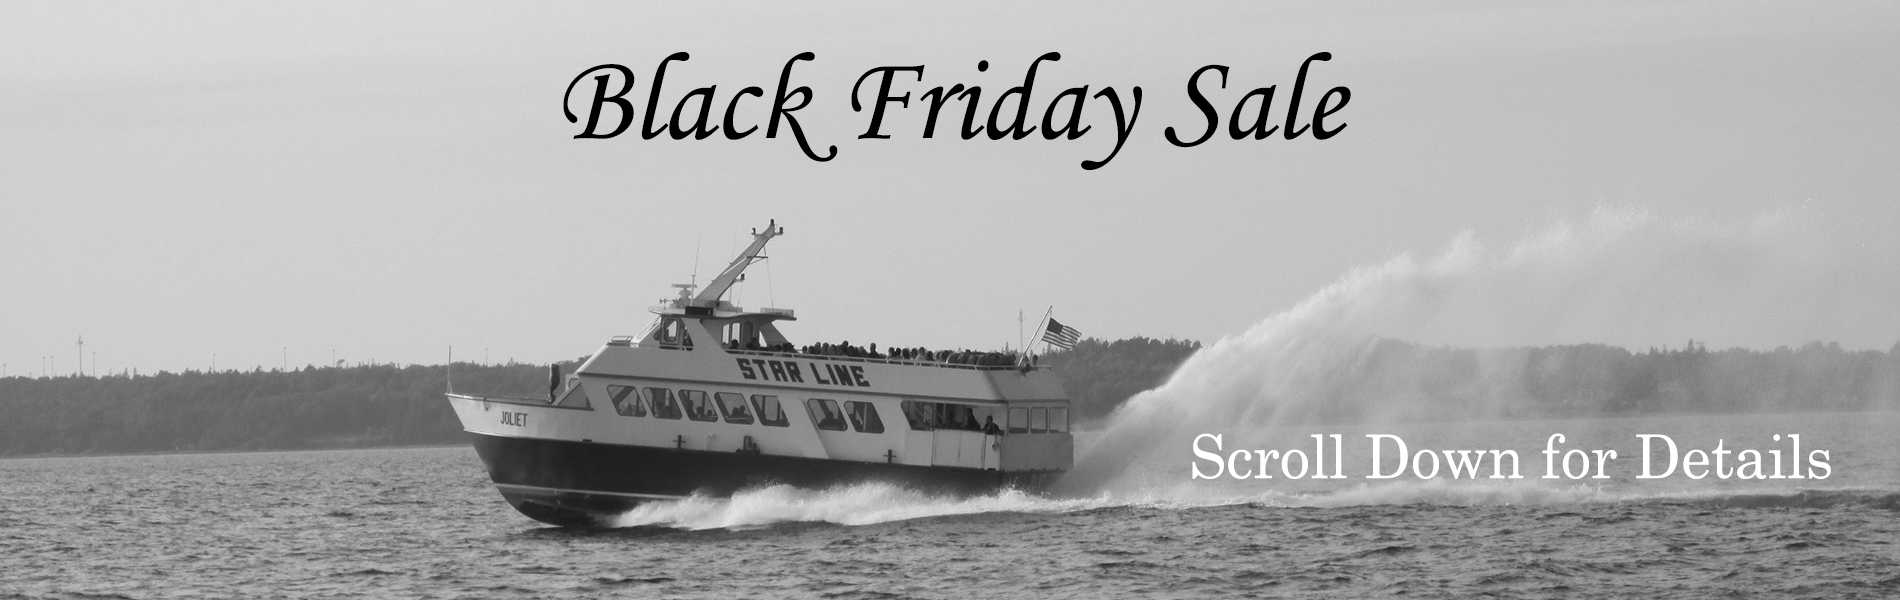 Details: Star Line Ferry Information for The Mackinac Conference for $18 per person Or you can purchase a ticket when you get to the ferry in Mackinac City or St. Ignace. Expires on 08/31/ Expires on 08/31/